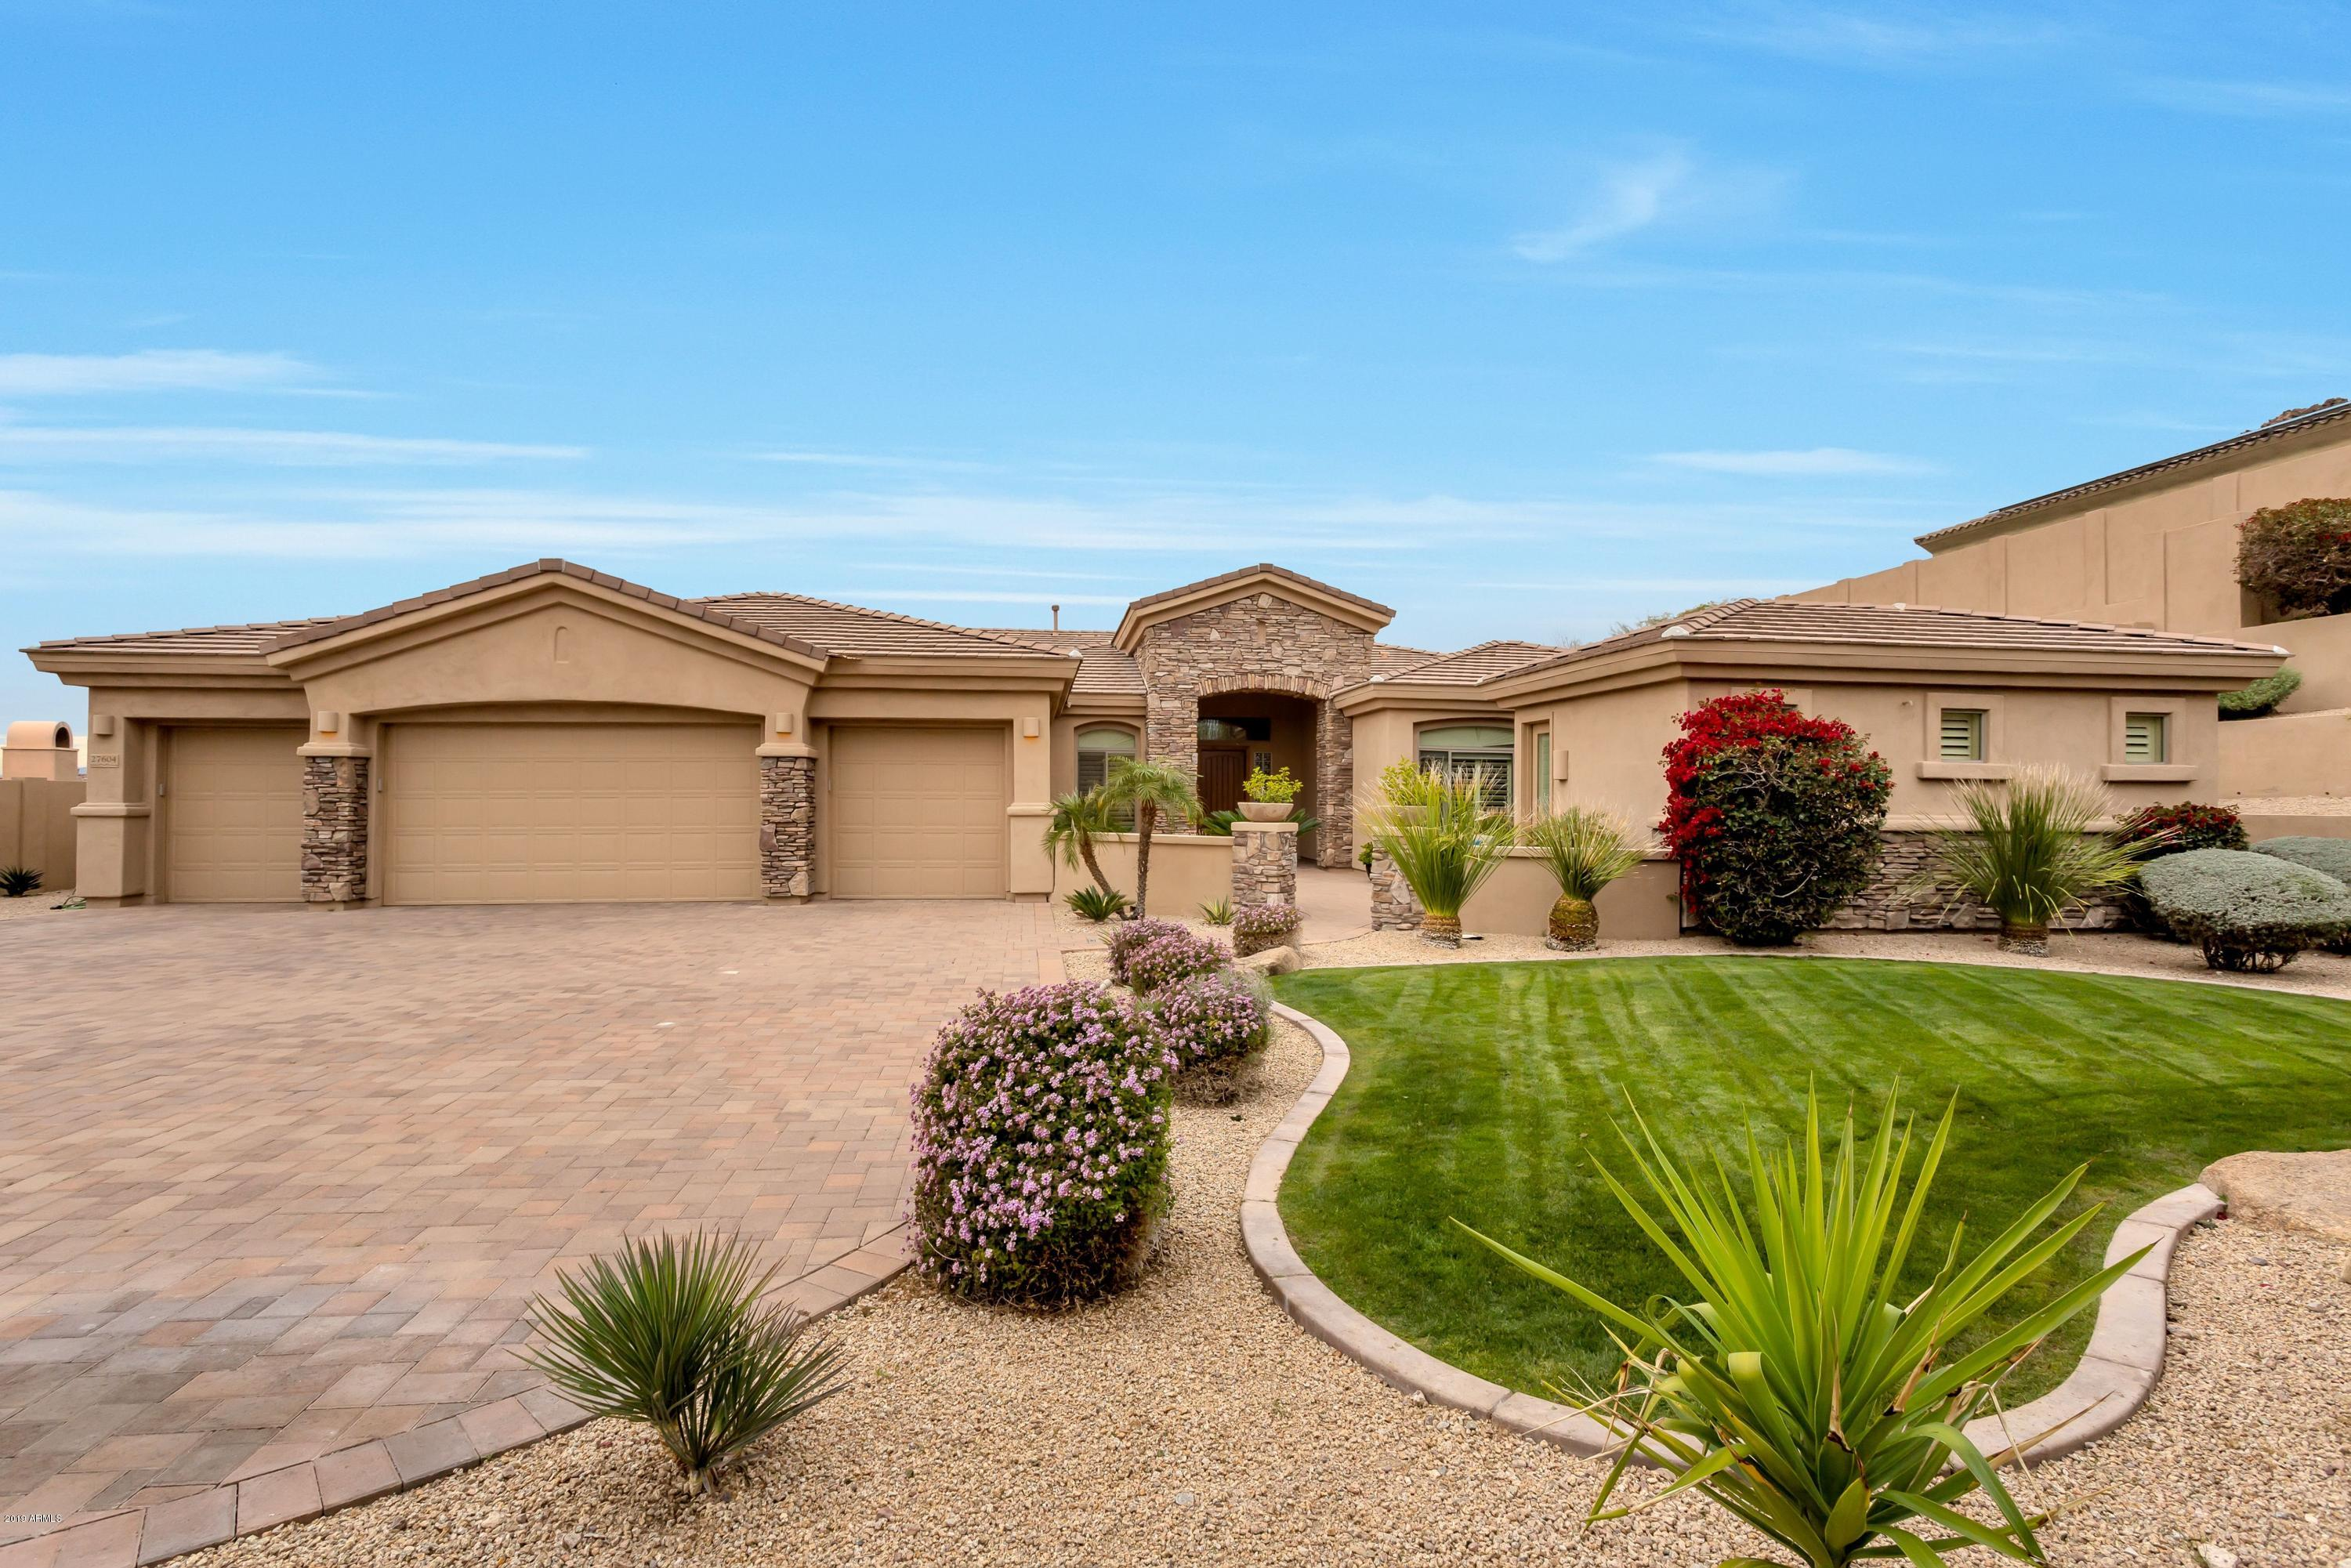 27604 N 85TH Drive, Peoria in Maricopa County, AZ 85383 Home for Sale